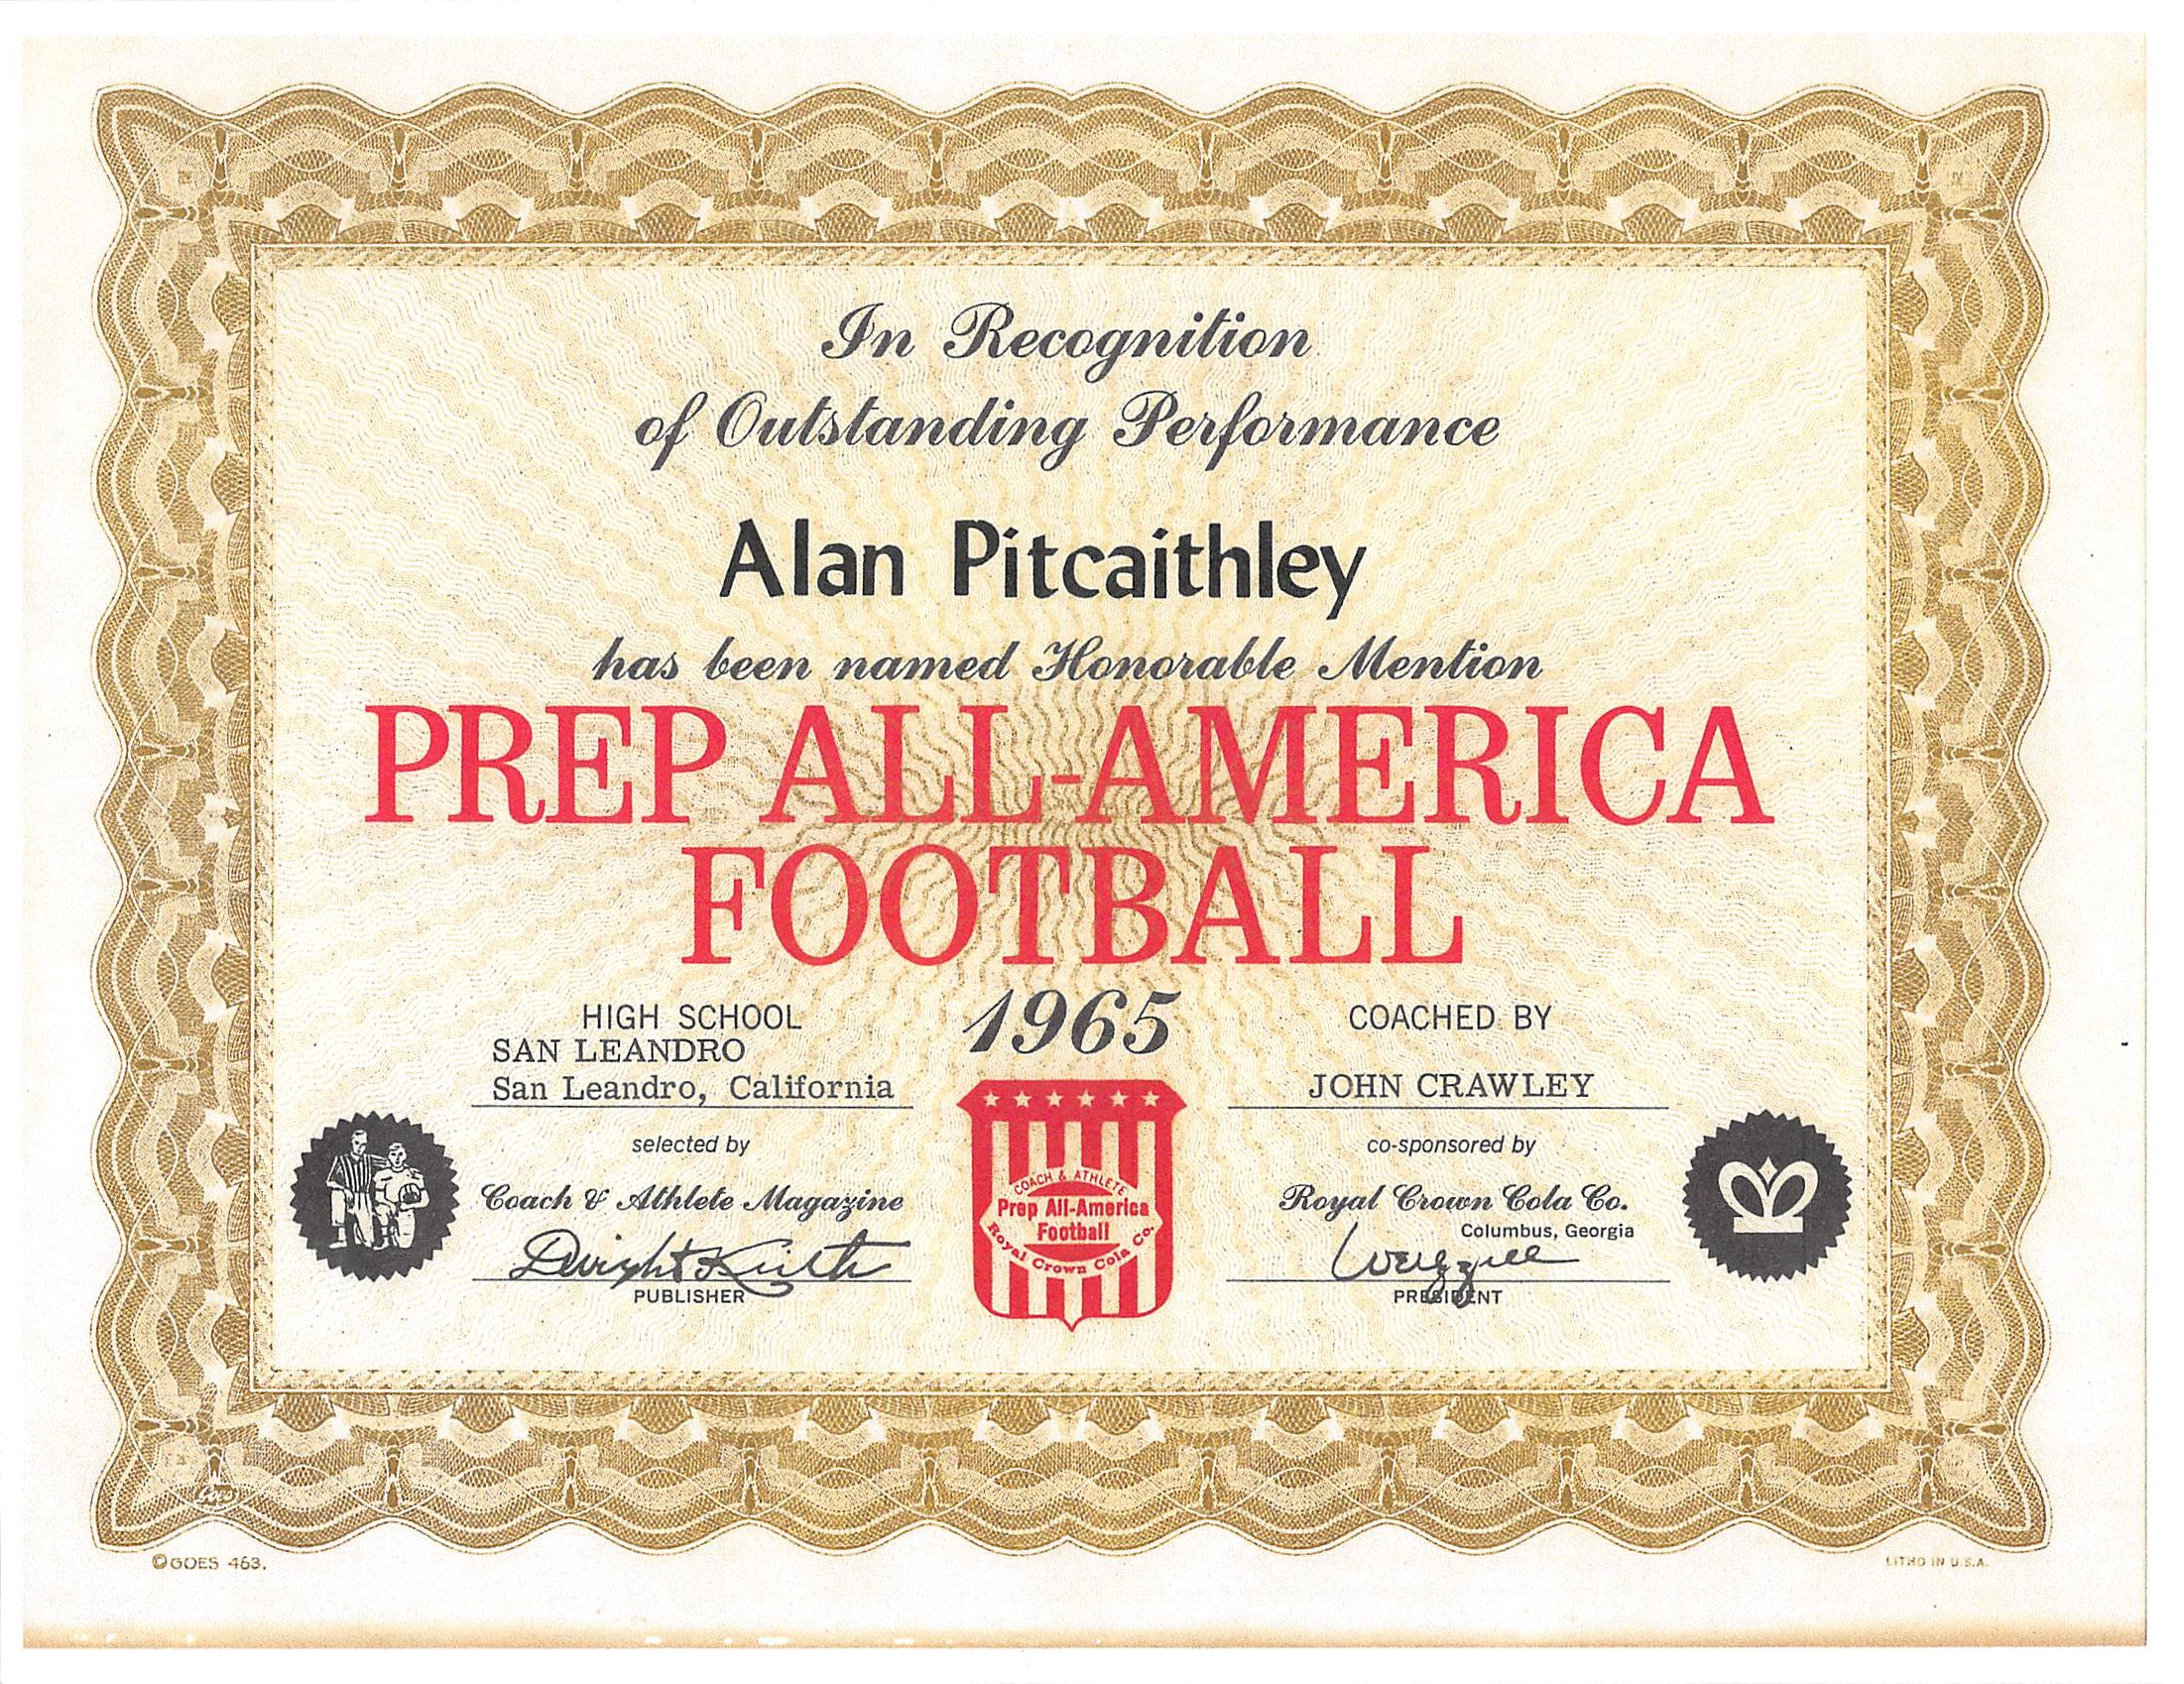 Al Pitcaithhley Prep All-American